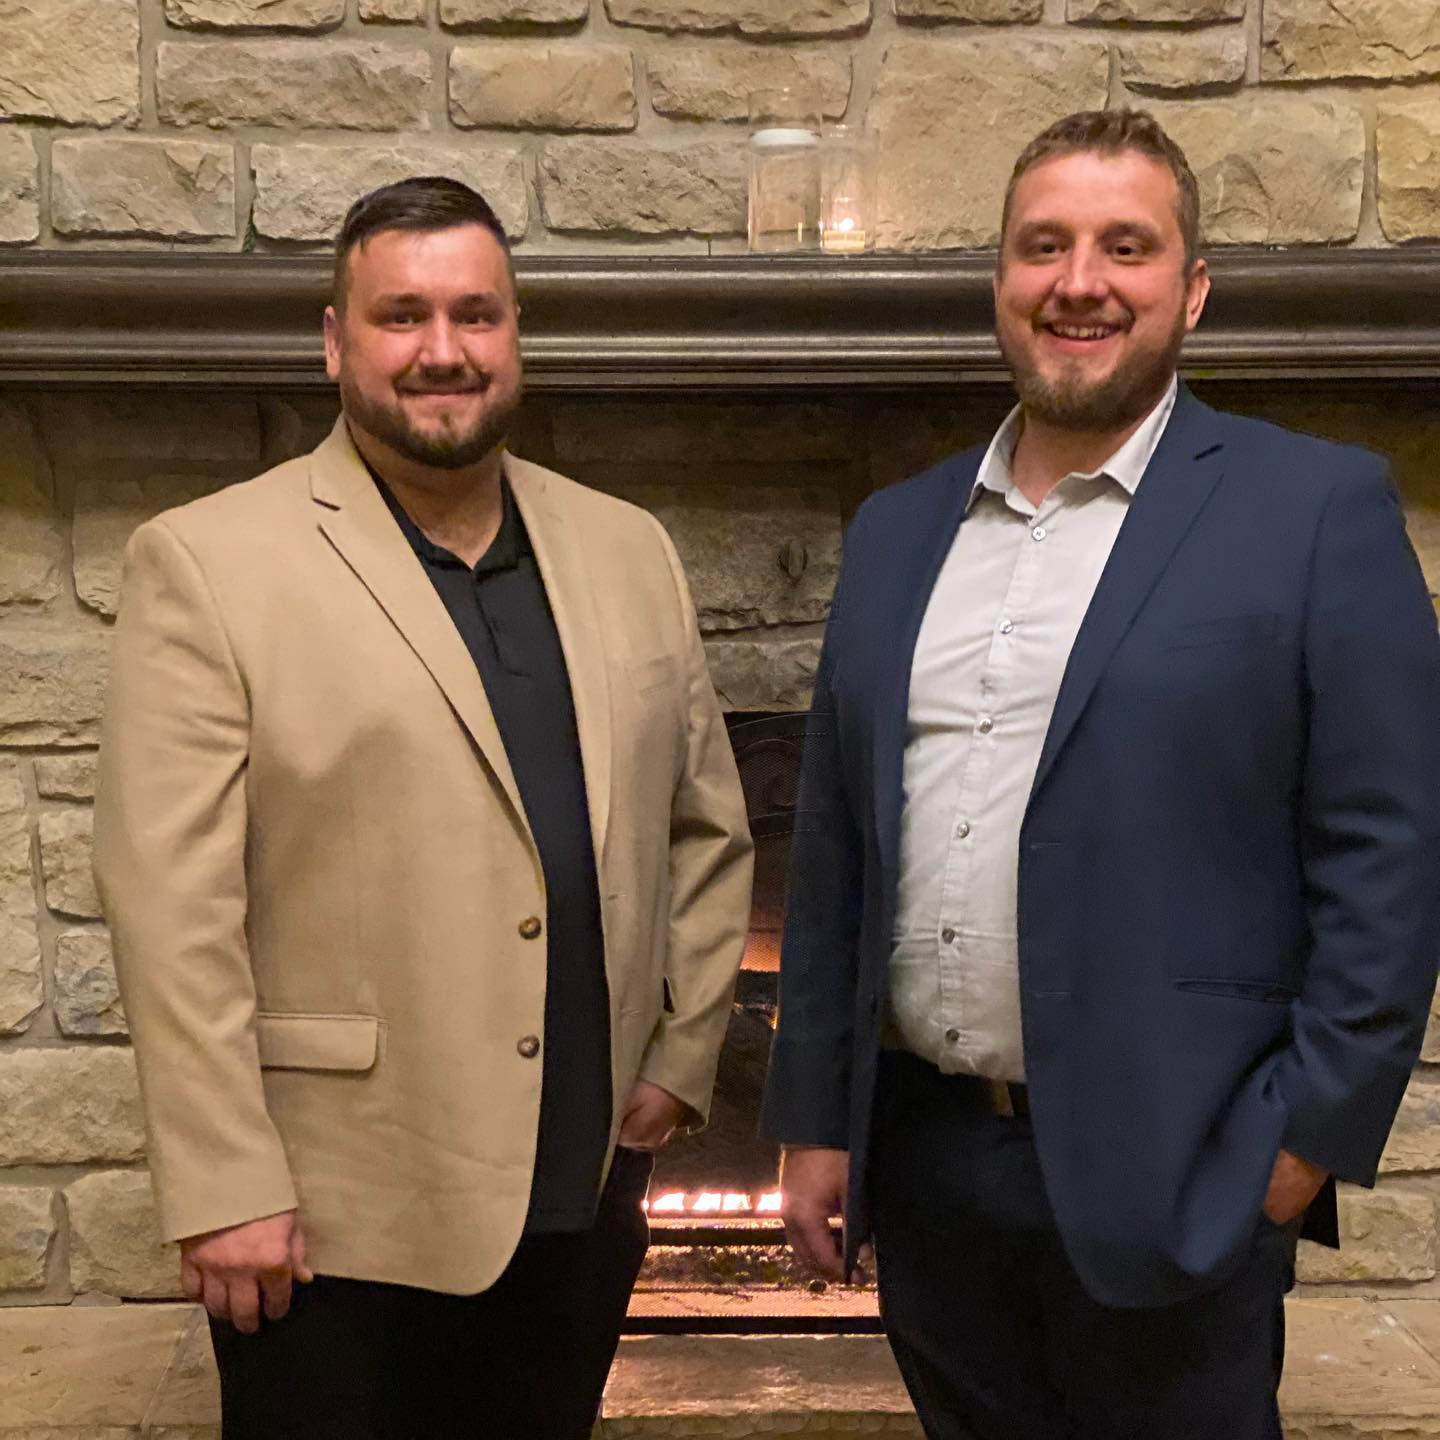 TBrothers Renovations - Danil and Vadim remodeling contractors